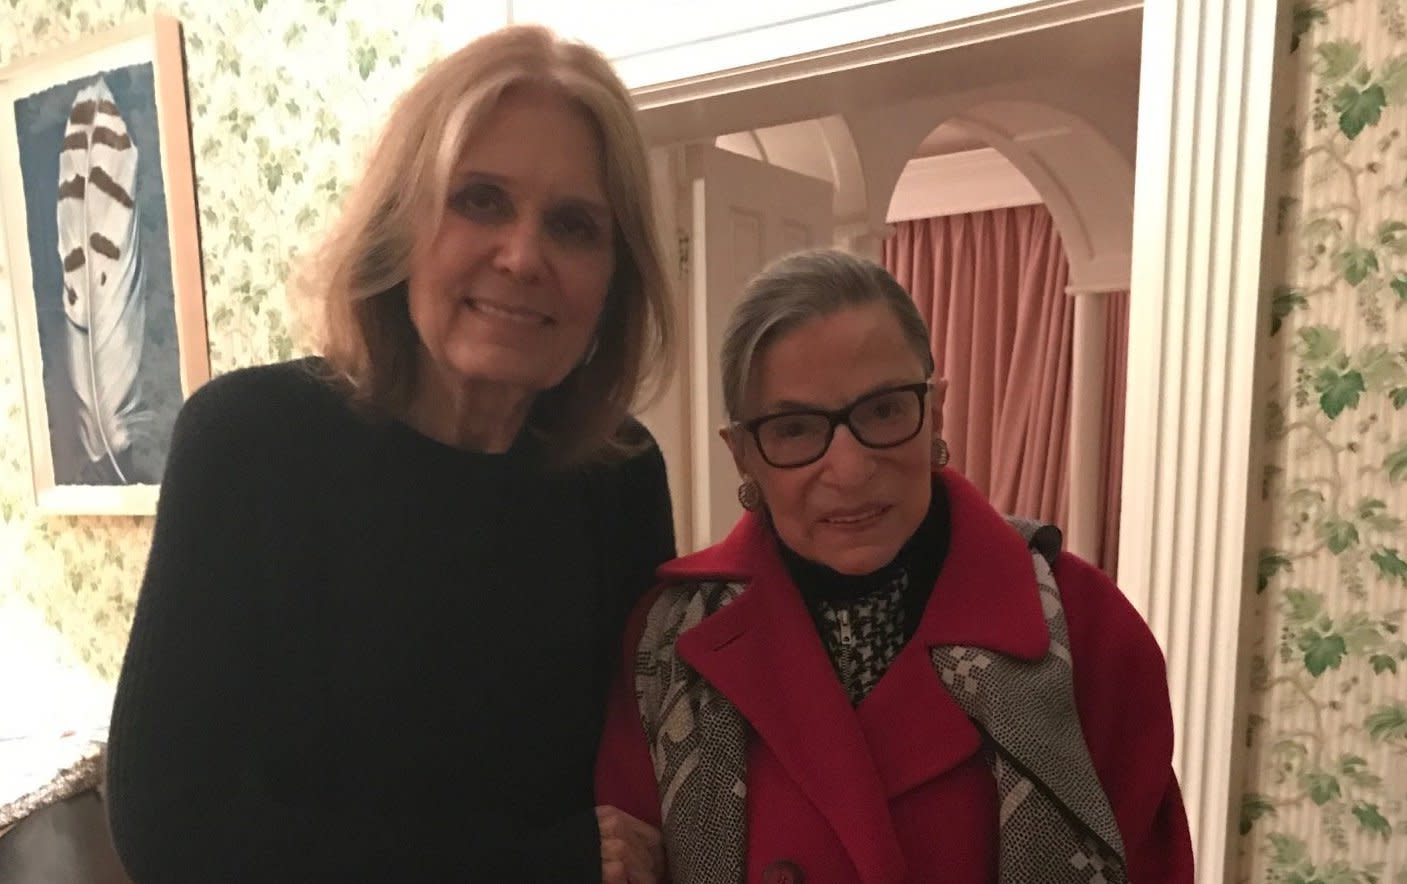 Gloria Steinem and Ruth Bader Ginsburg were longtime allies and friends (Photo: Gloria Steinem/Twitter)